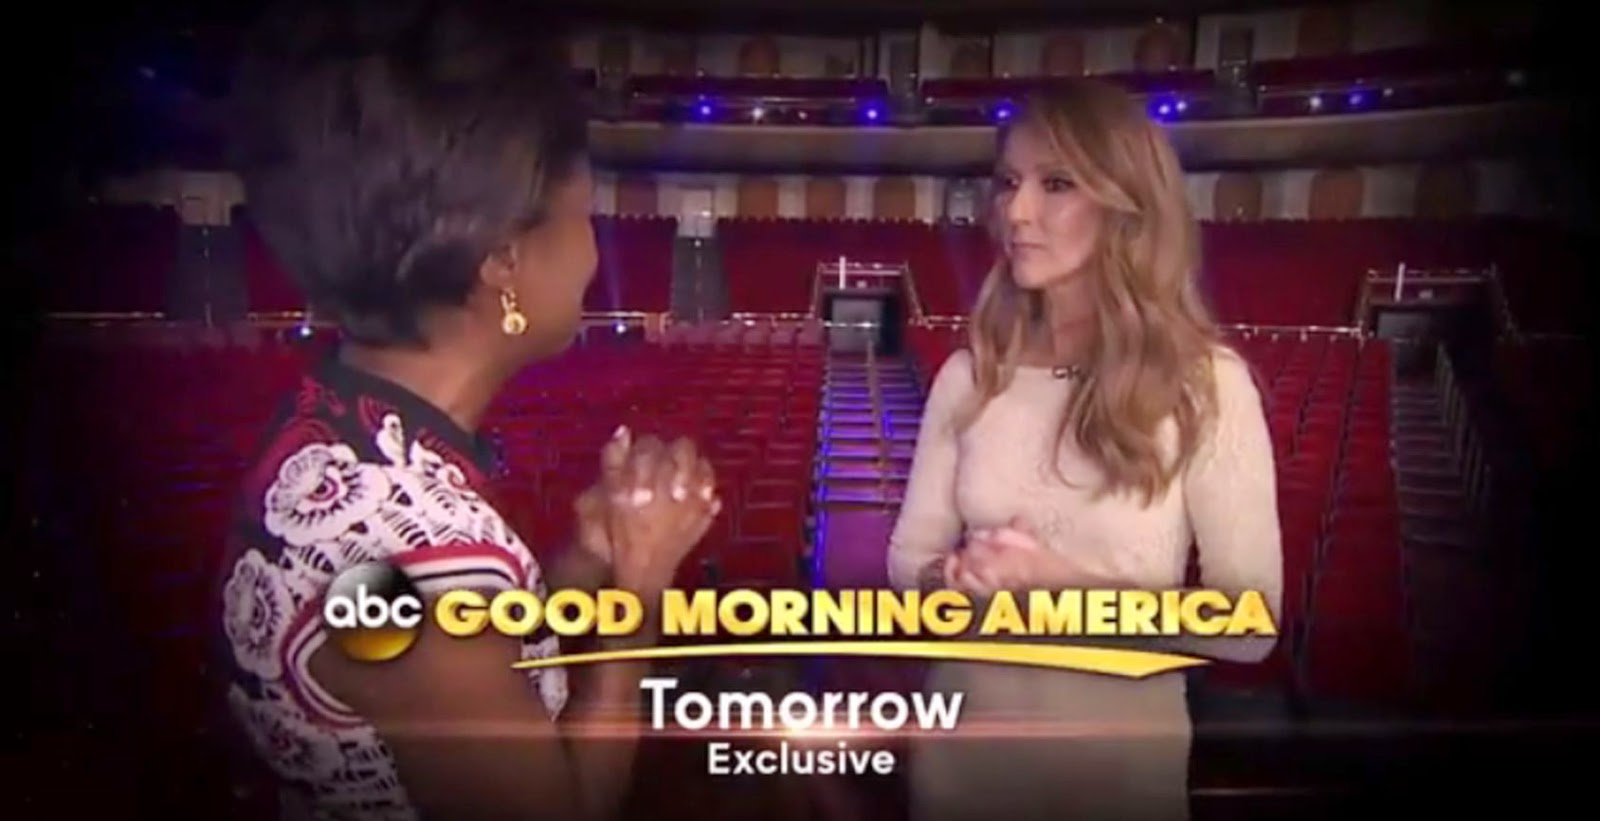 Good Morning America Tomorrow : The power of love celine dion in interview